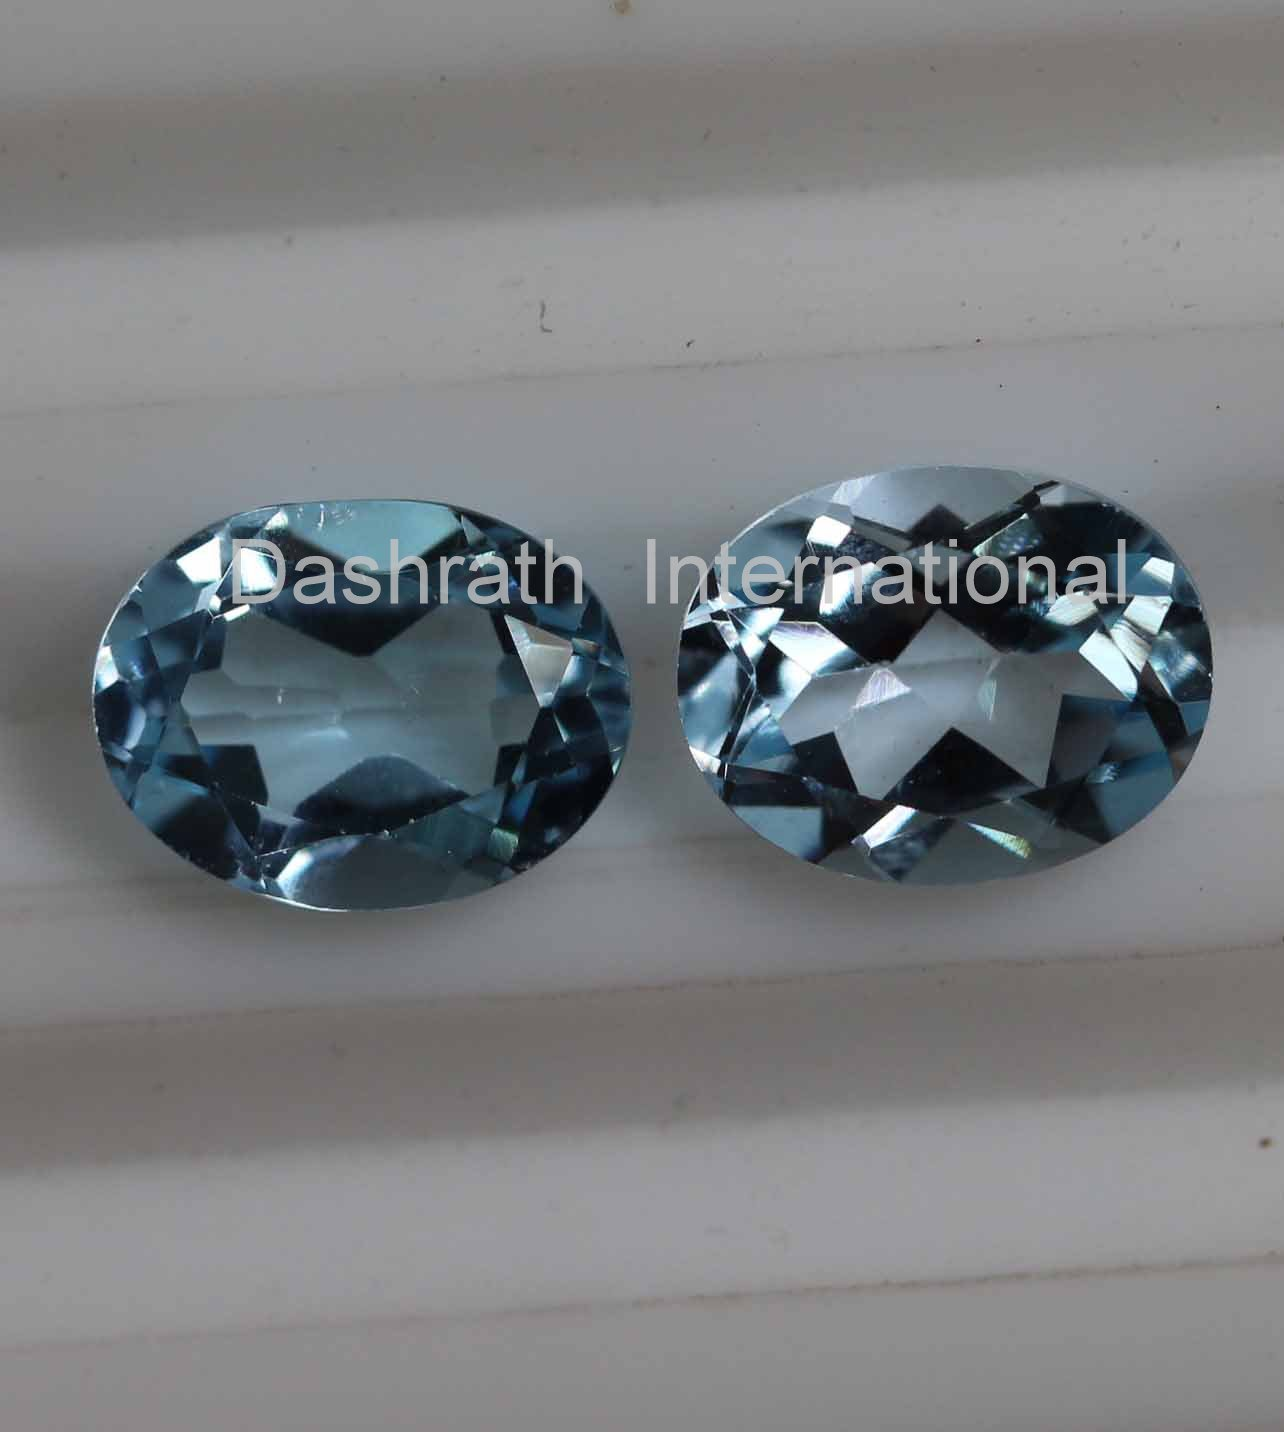 8x10mm  Natural Sky Blue Topaz Faceted Cut Oval  25 Pieces Lot  Top Quality Loose Gemstone